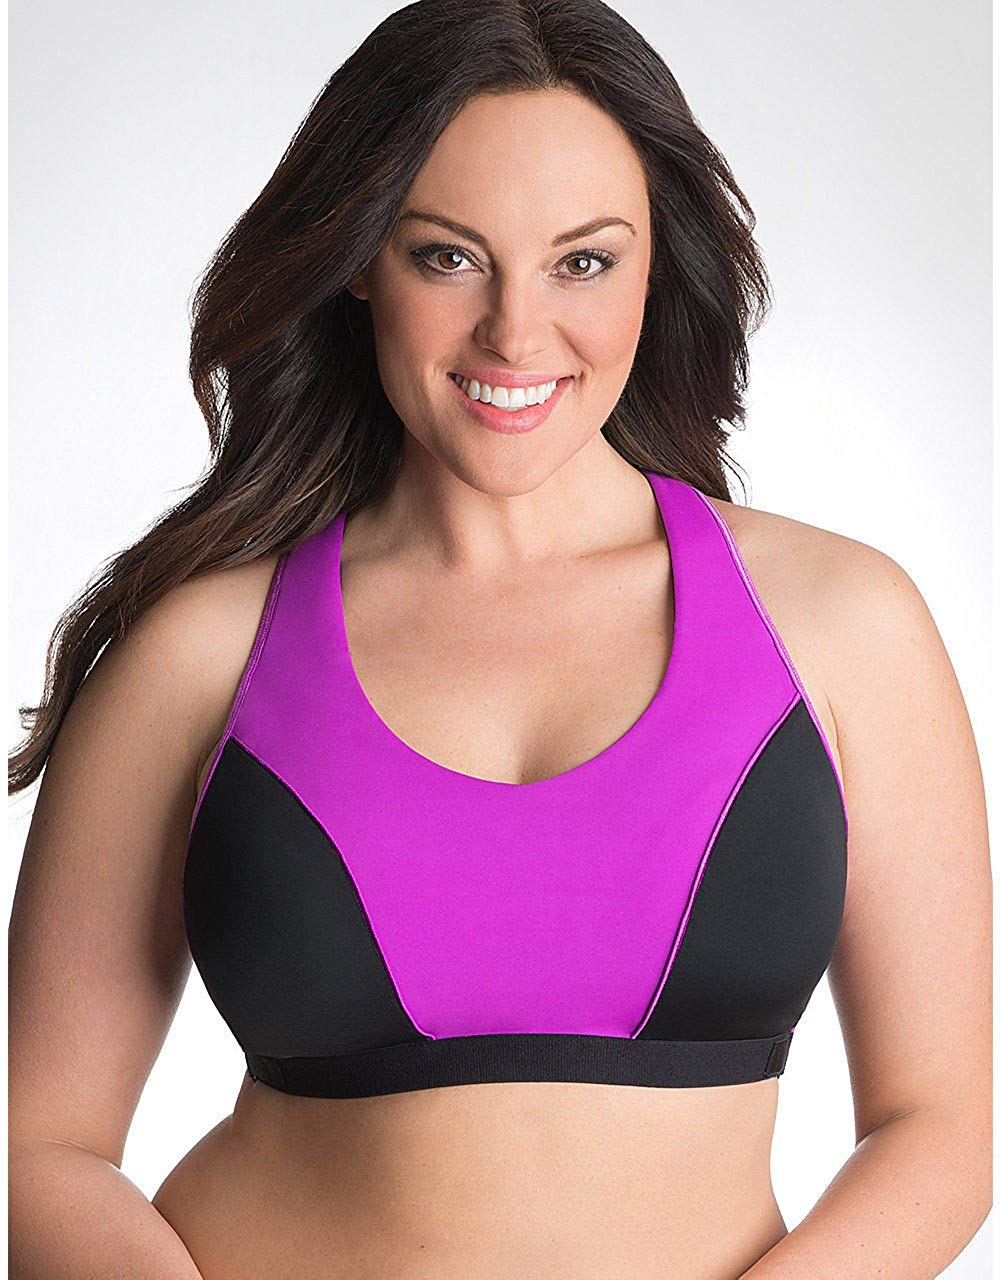 88e8e54ddd466 Get Quotations · Cacique Lane Bryant Racer Back No-Wire High Impact Sports  Bra